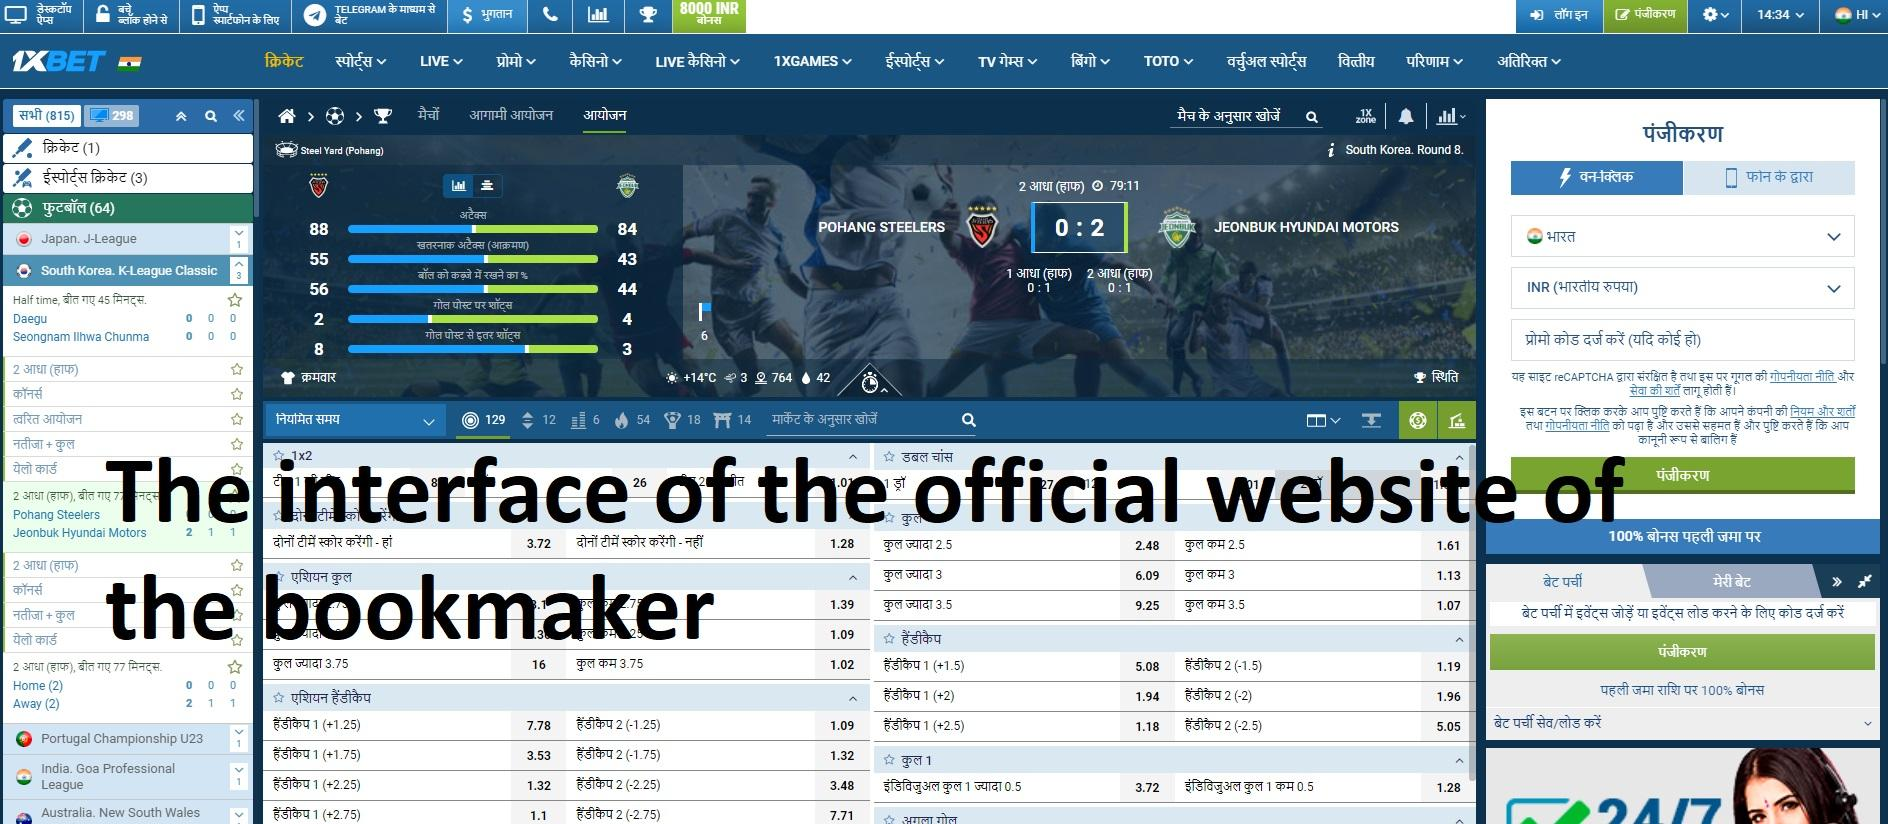 The interface of 1xbet